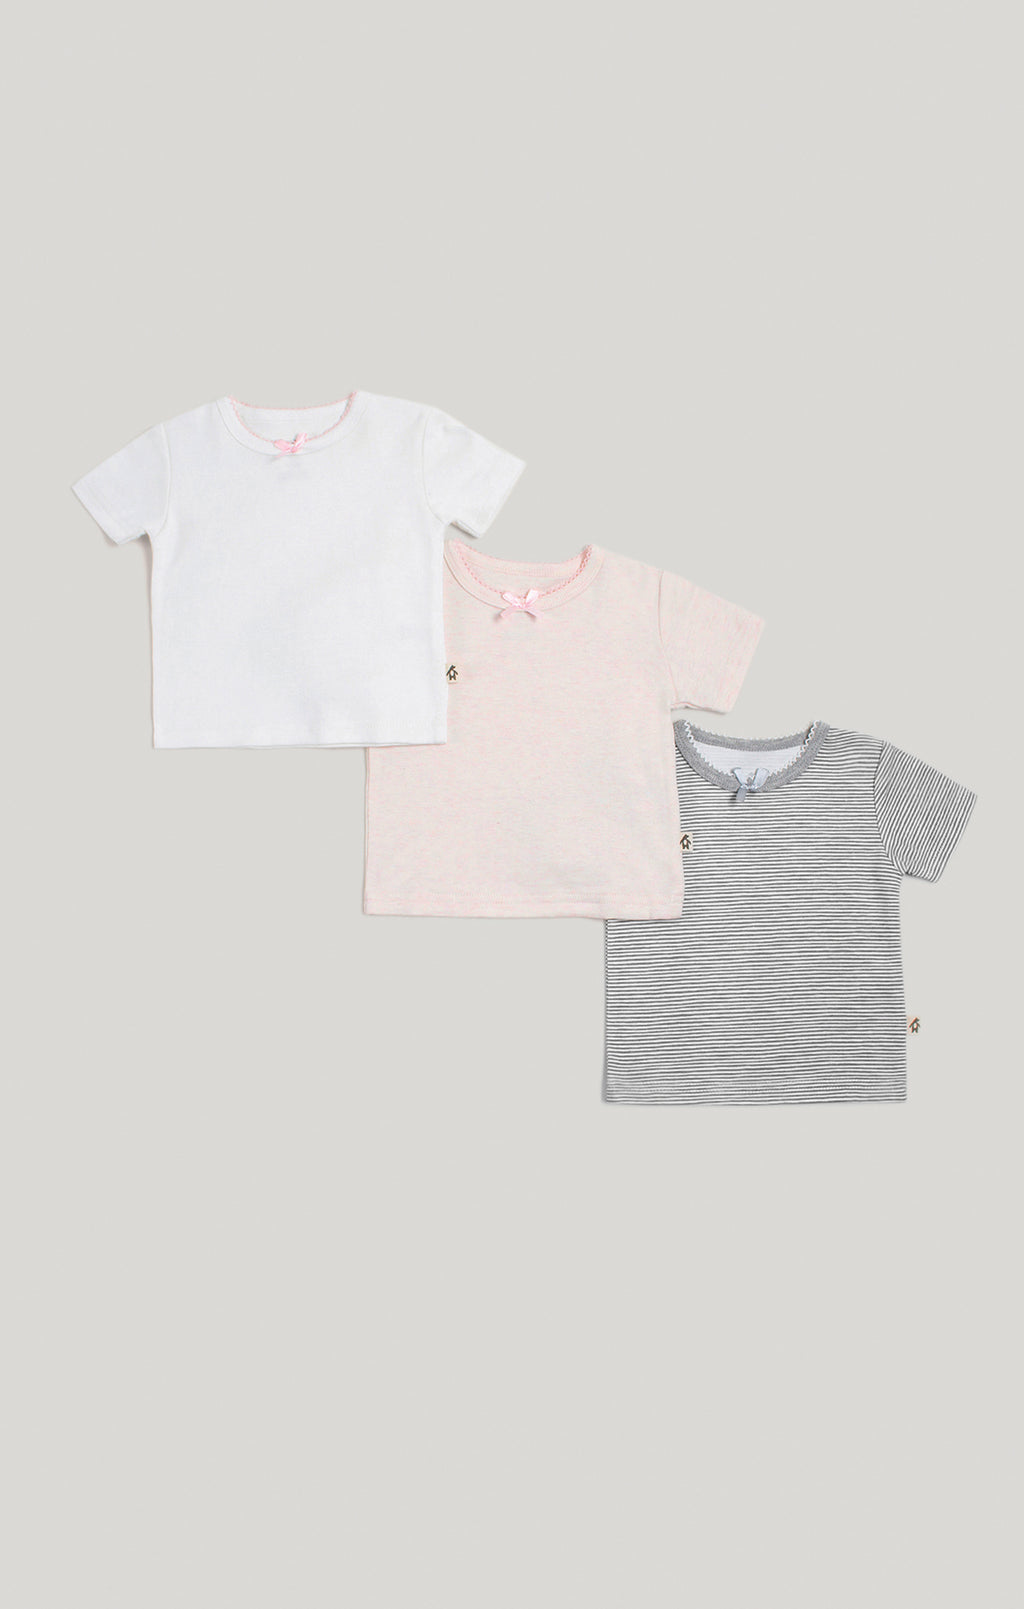 Baby Clothes - Baby Girl 3 Pack of Short Sleeve T-Shirts